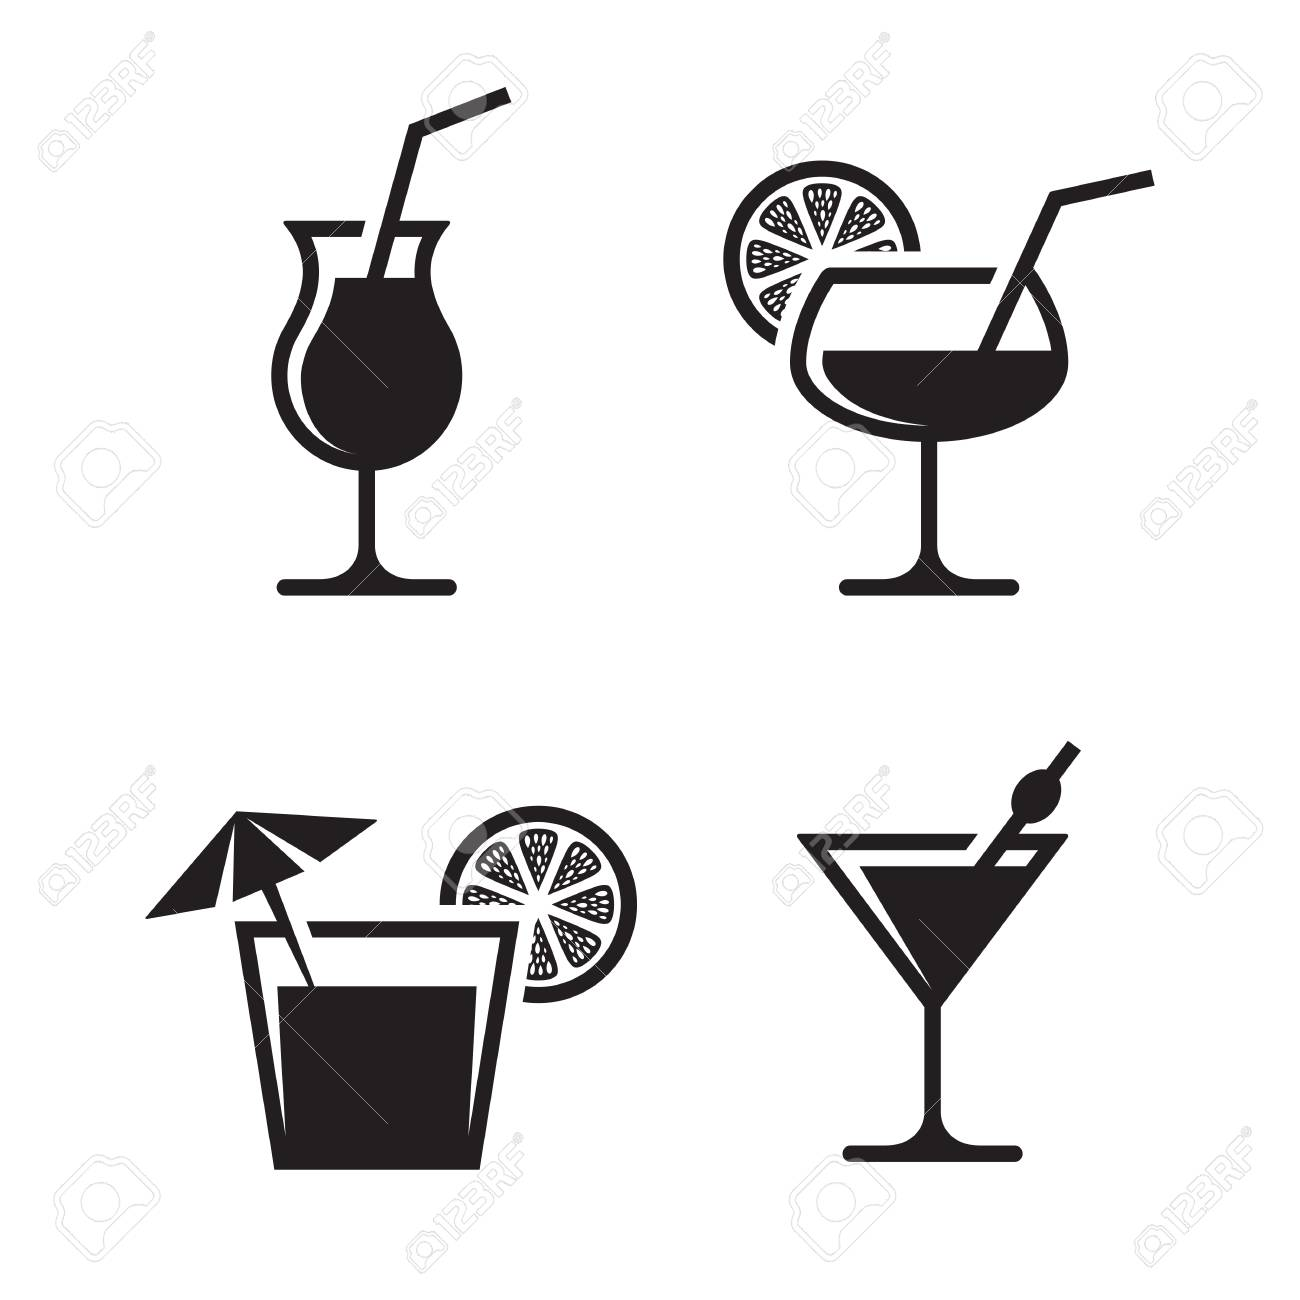 Cocktail black, isolated icons on a white background.